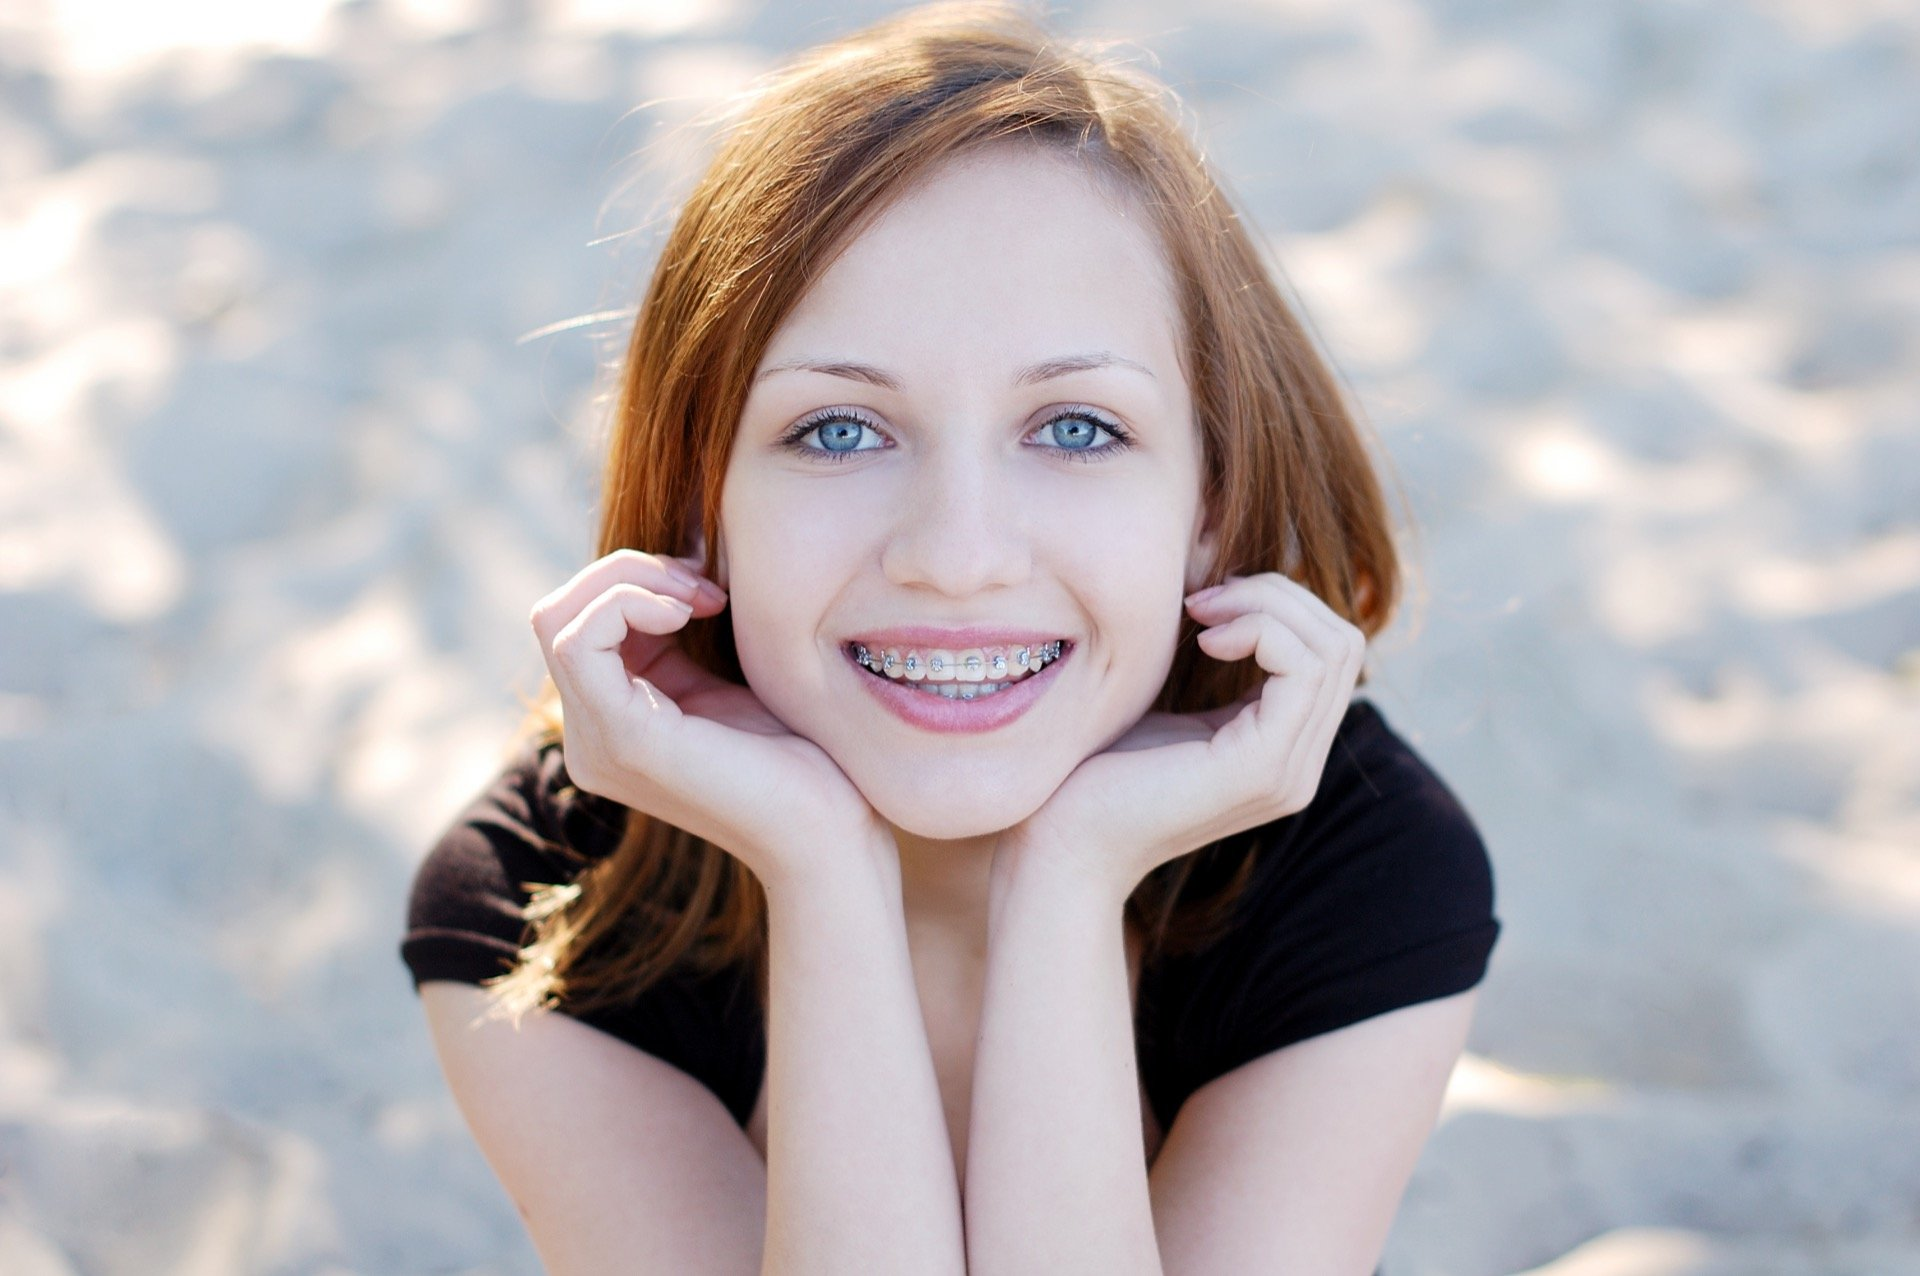 Young woman wearing braces